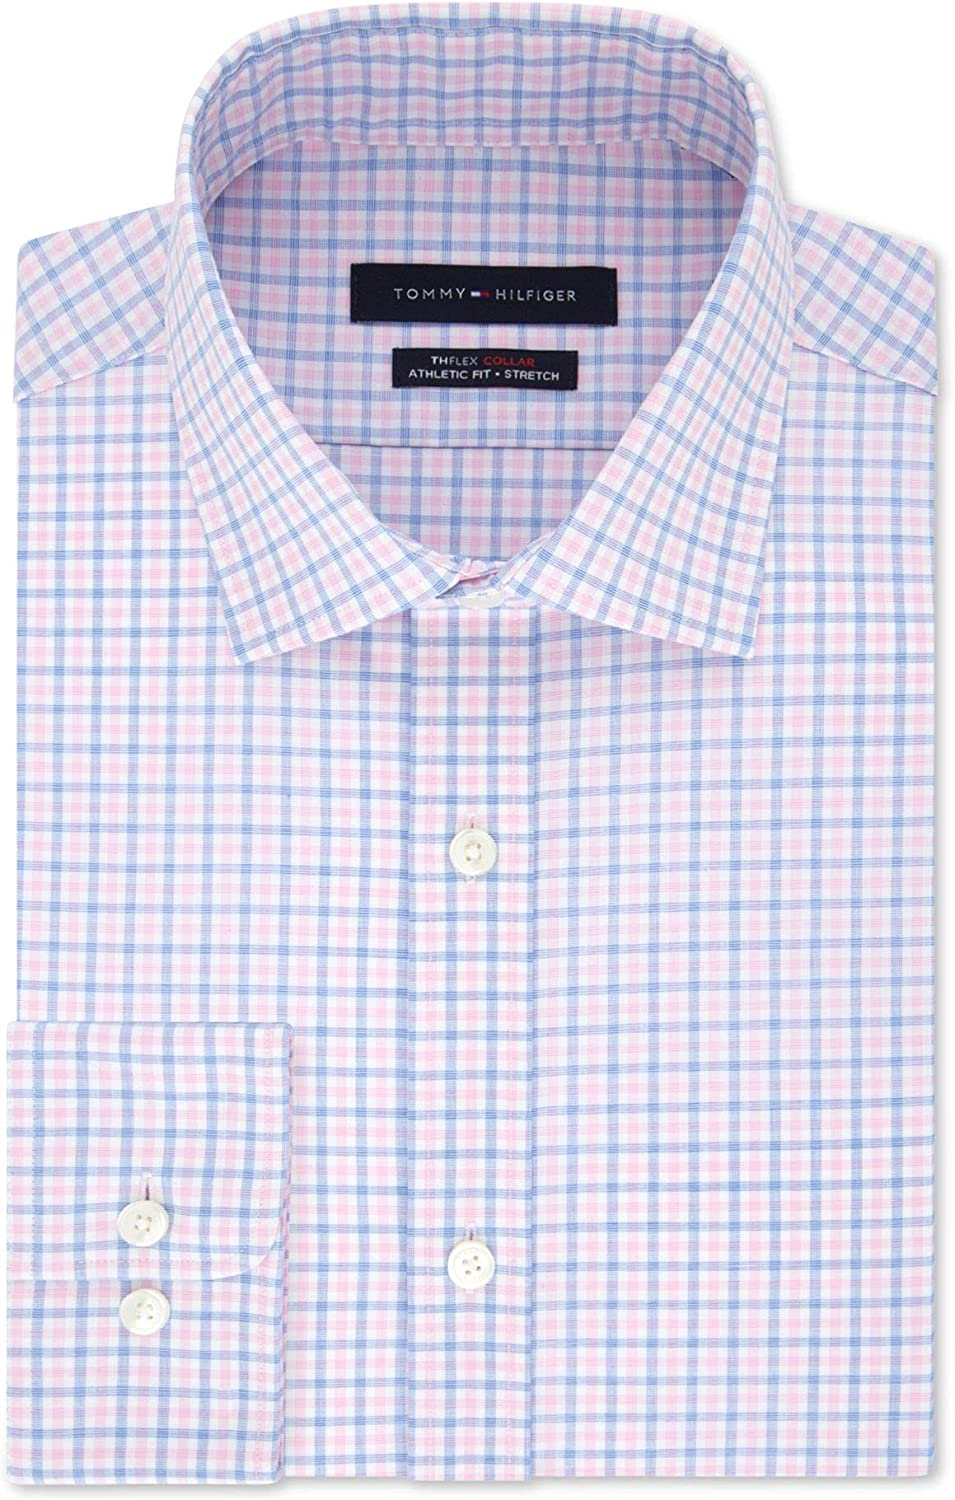 Tommy Hilfiger Mens Pink Check Collared Classic Fit Stretch Dress Shirt L